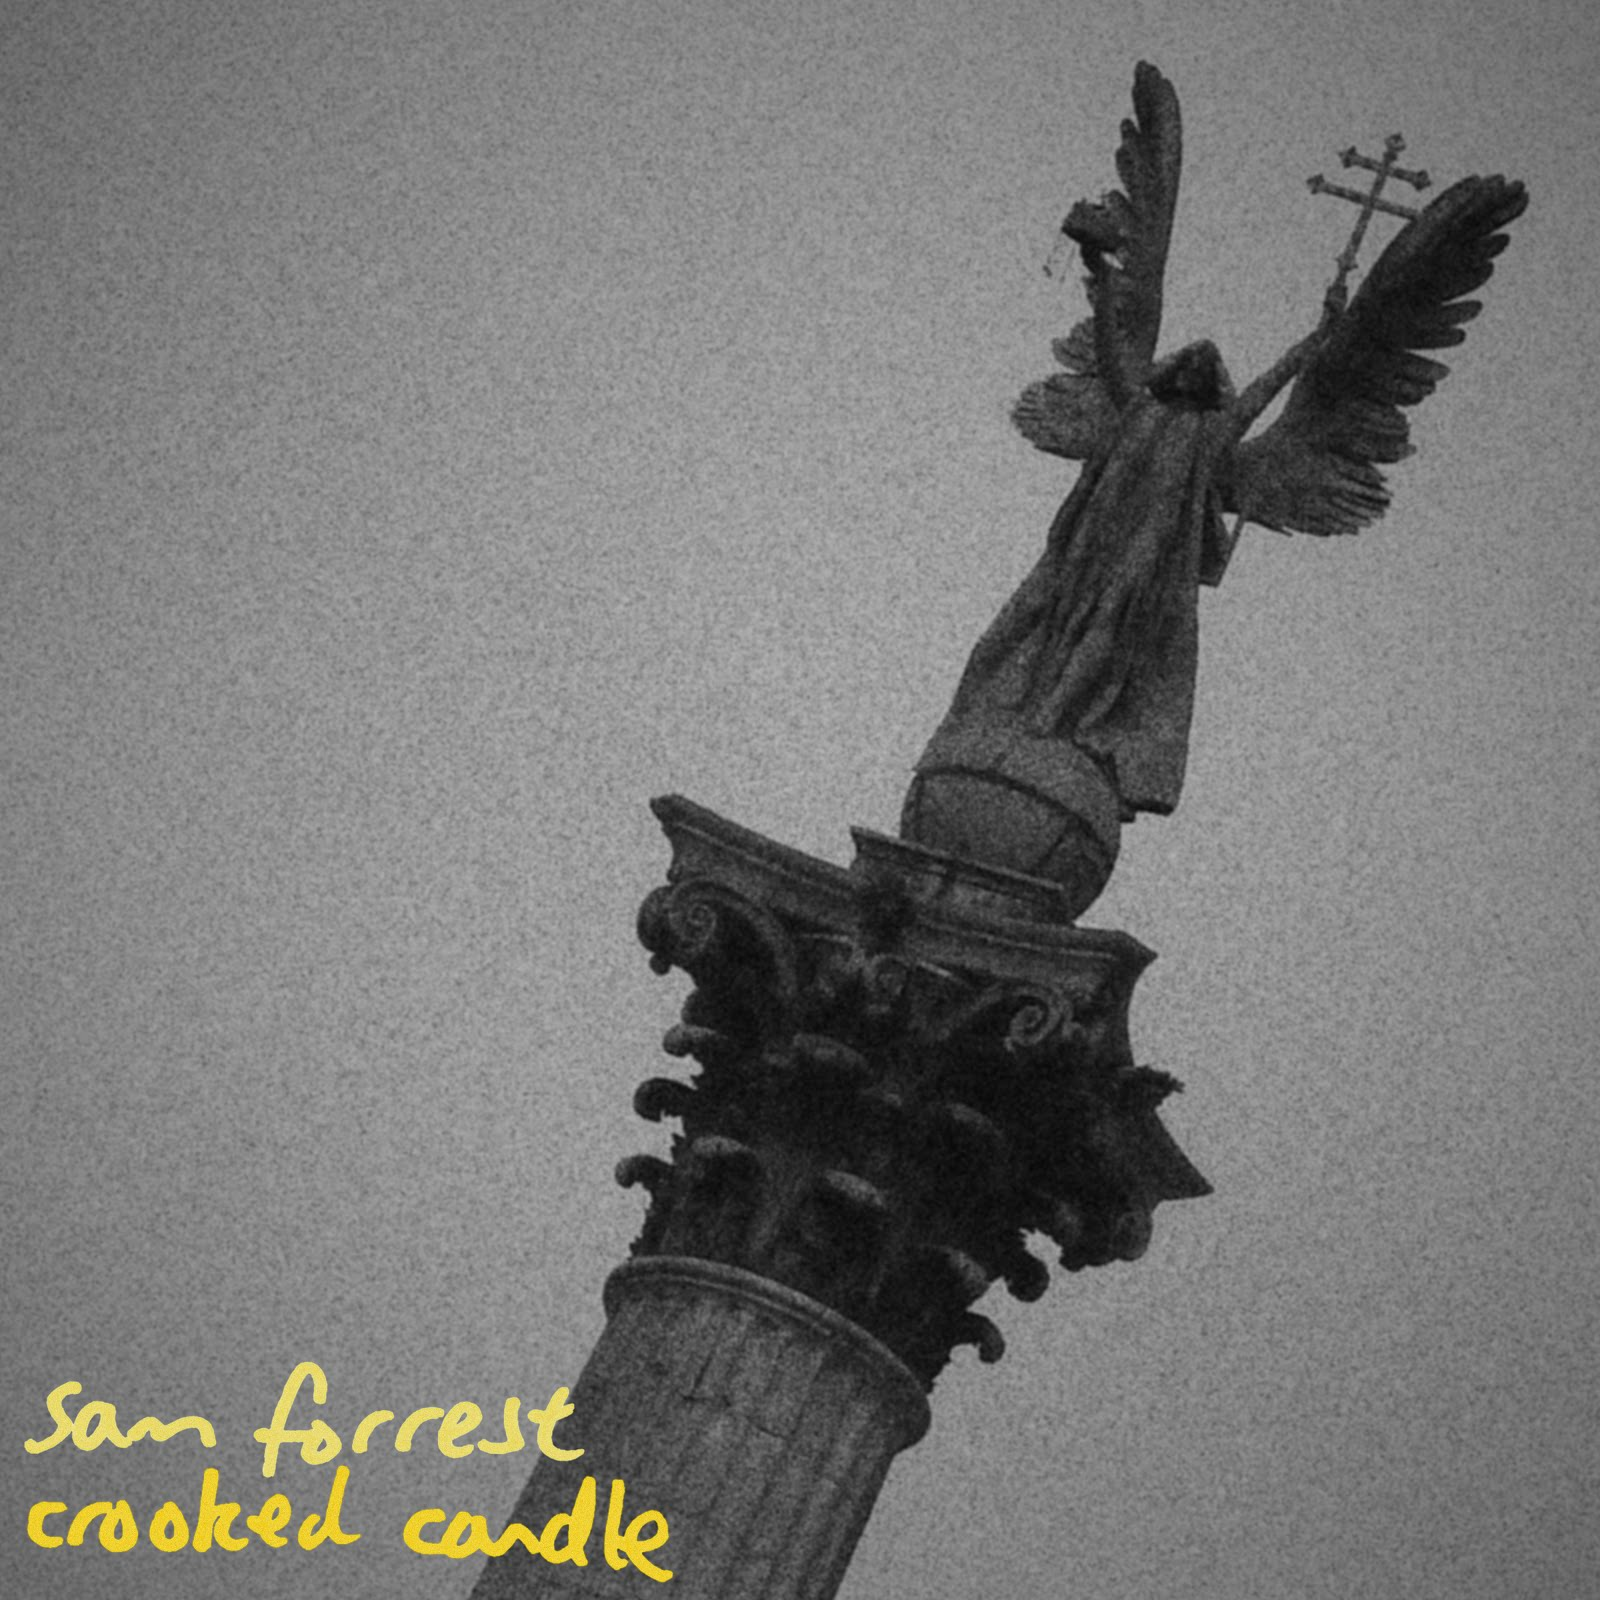 crooked candle